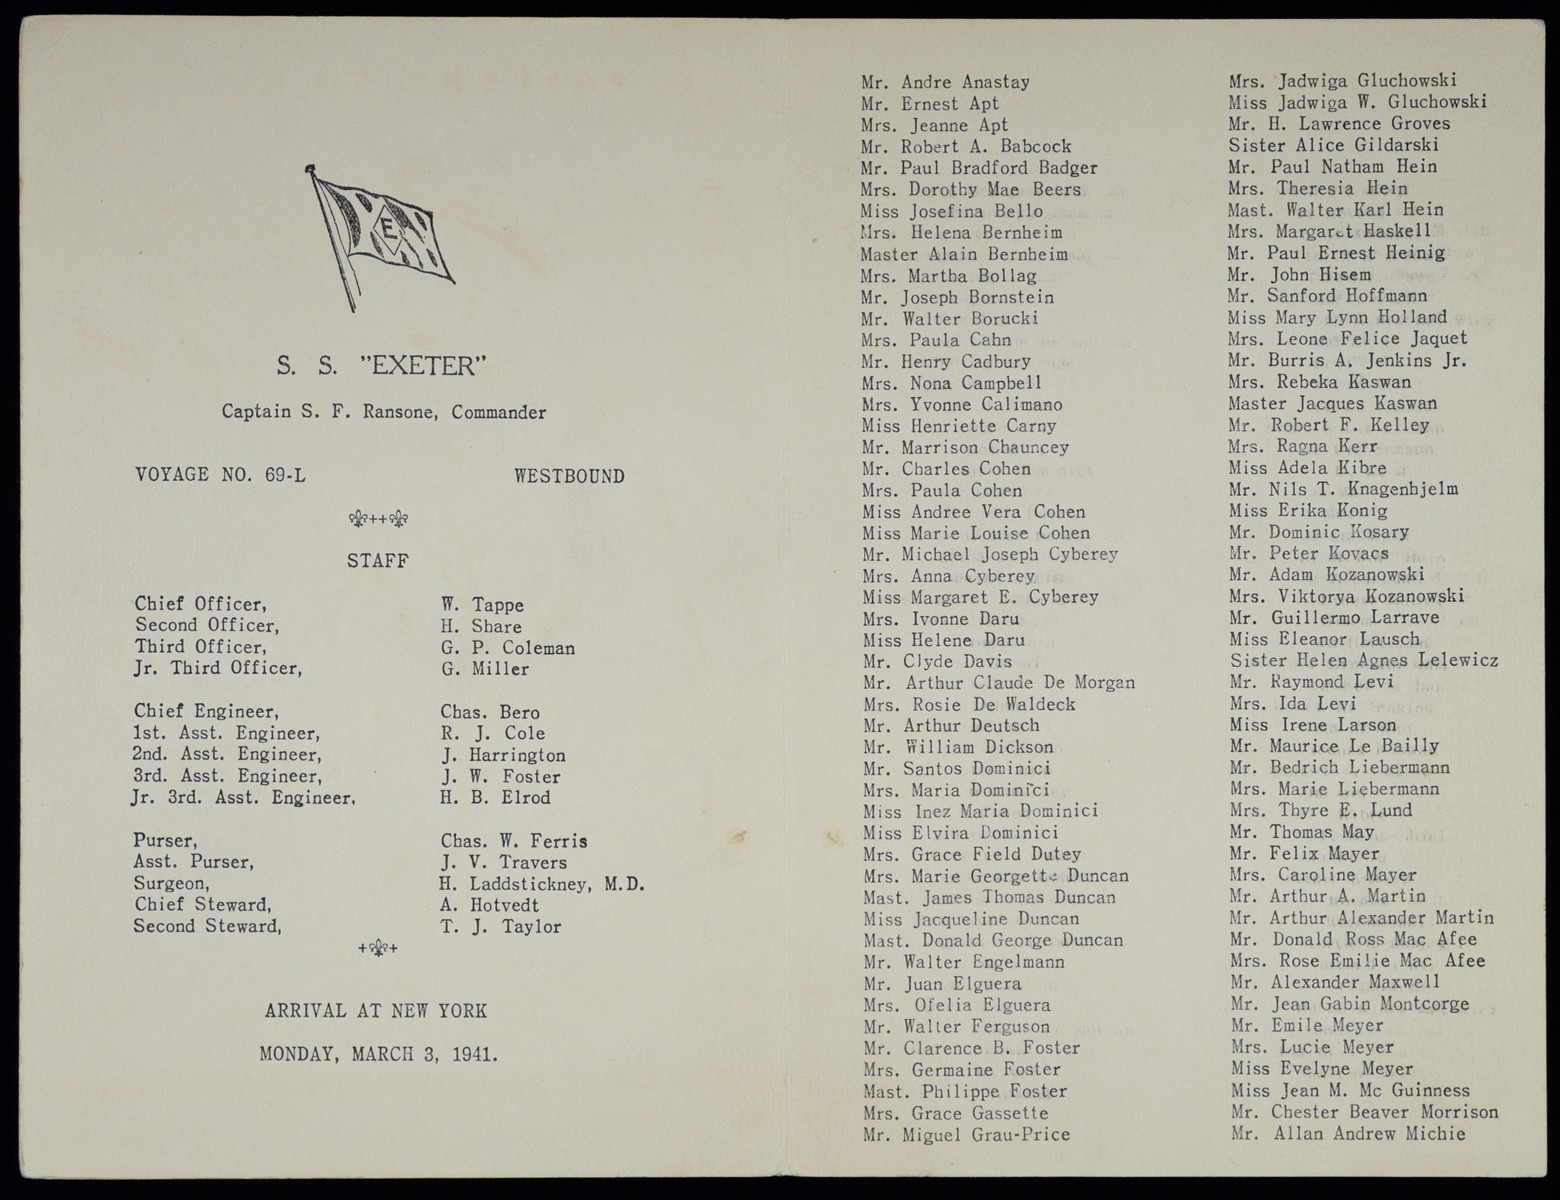 Passenger list of the SS Exeter sailing from Lisbon to New York on February 21, 1941.  Among those listed are five members of the Schadur family.